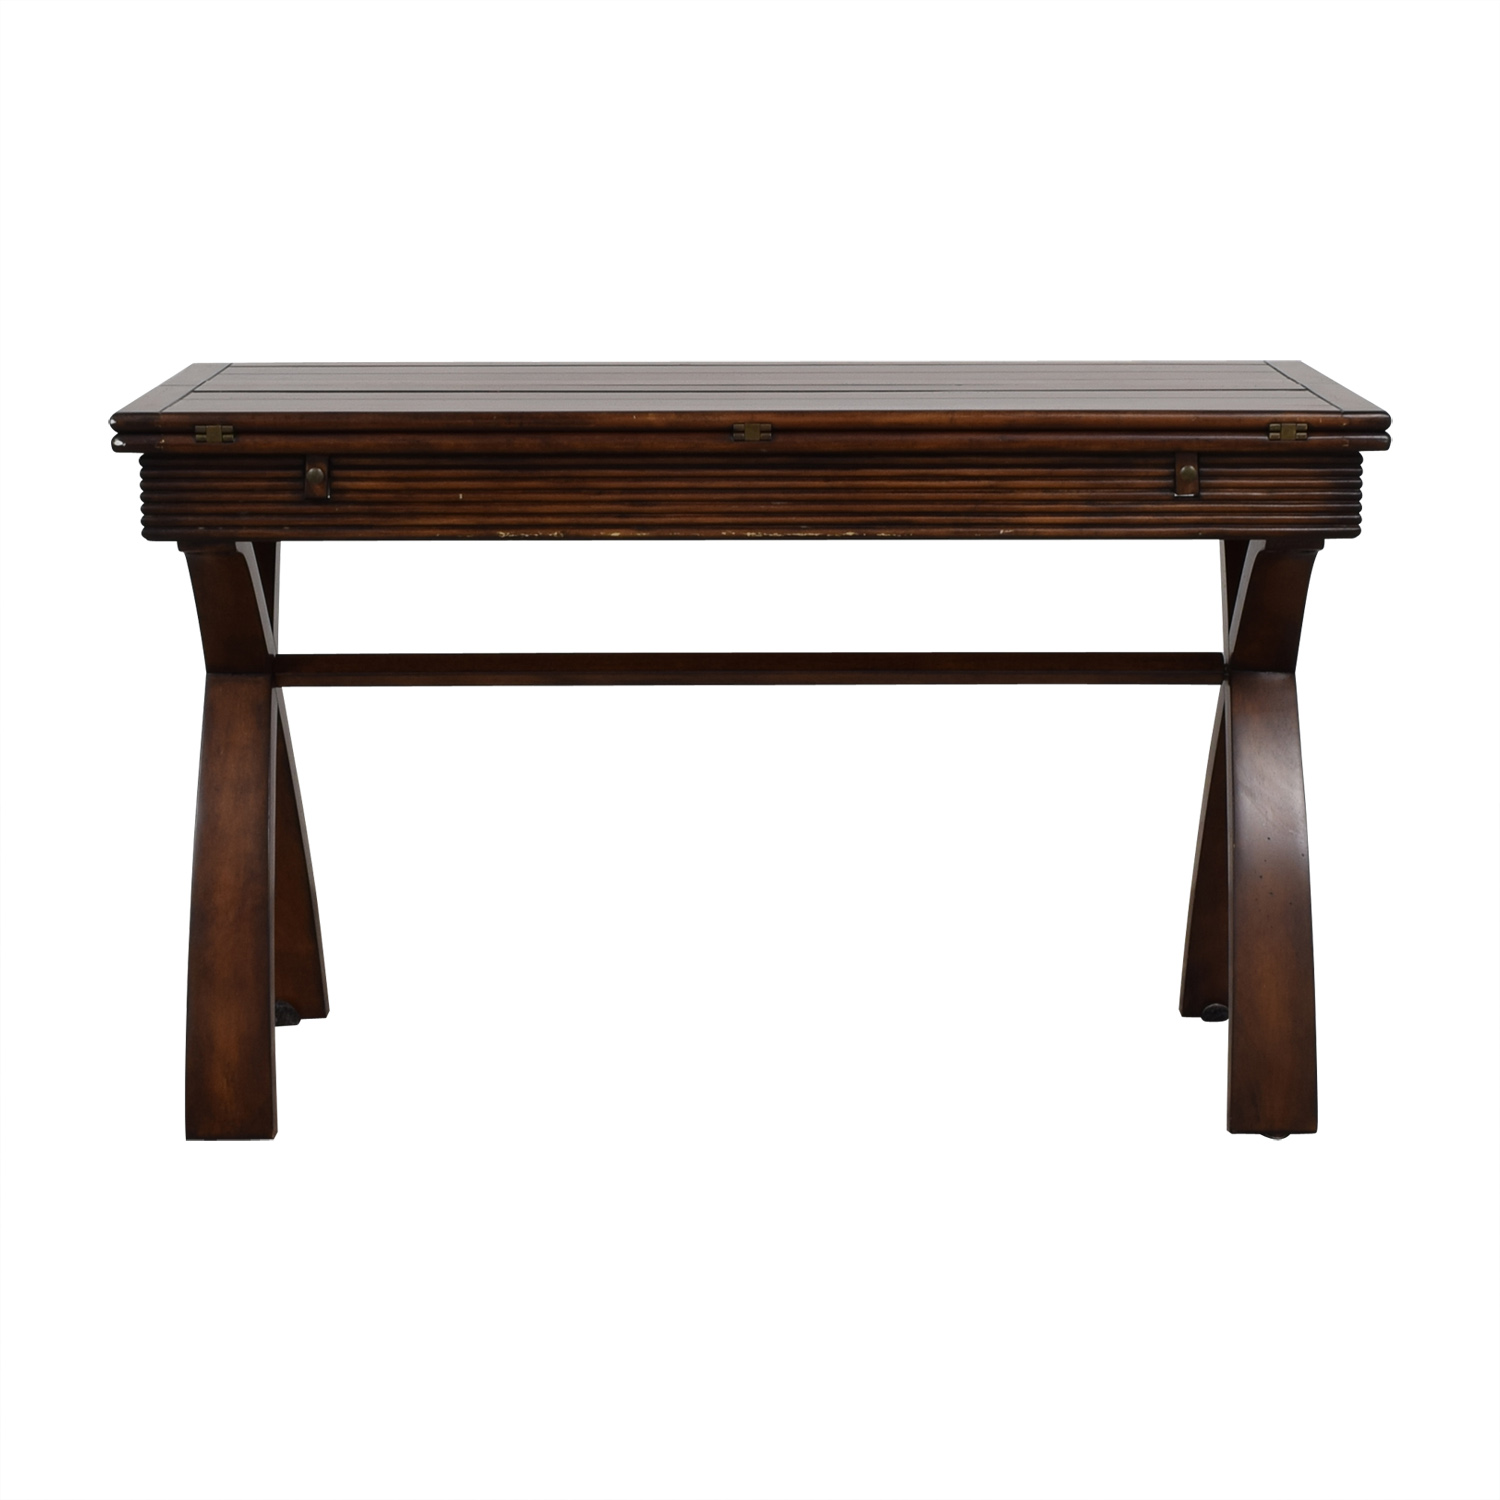 Extendable Wood Sofa Table dimensions